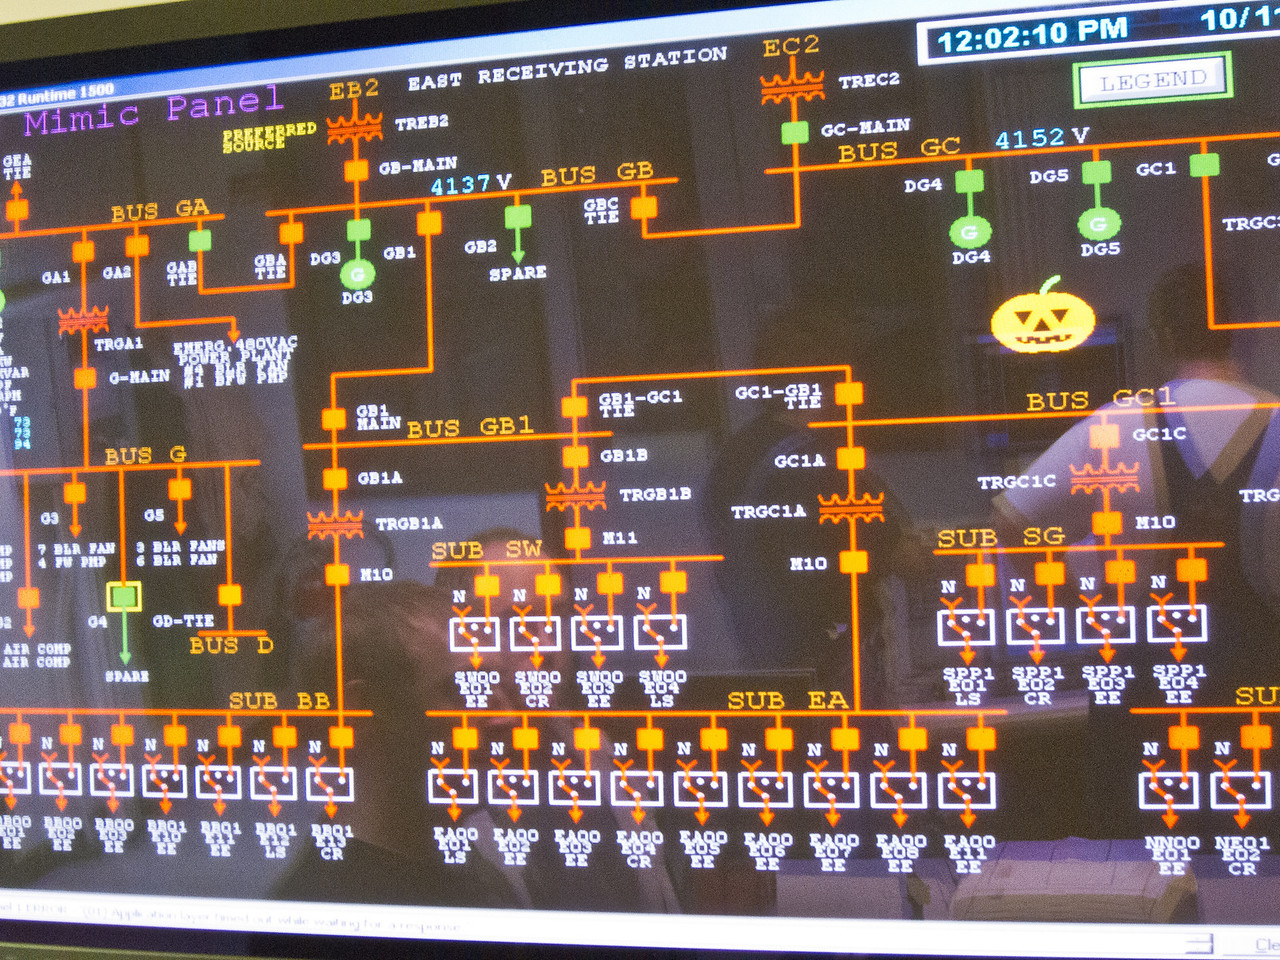 This large flat-panel screen is displaying the emergency electrical circuits. The generators are at the top with building loads twoard the bottom. The emergency power is distributed at 4kV. The red/orange lines show hot (energized) circuits. The white rectangles are switches that will toggle if line power is lost. Note the seasonal decoration!